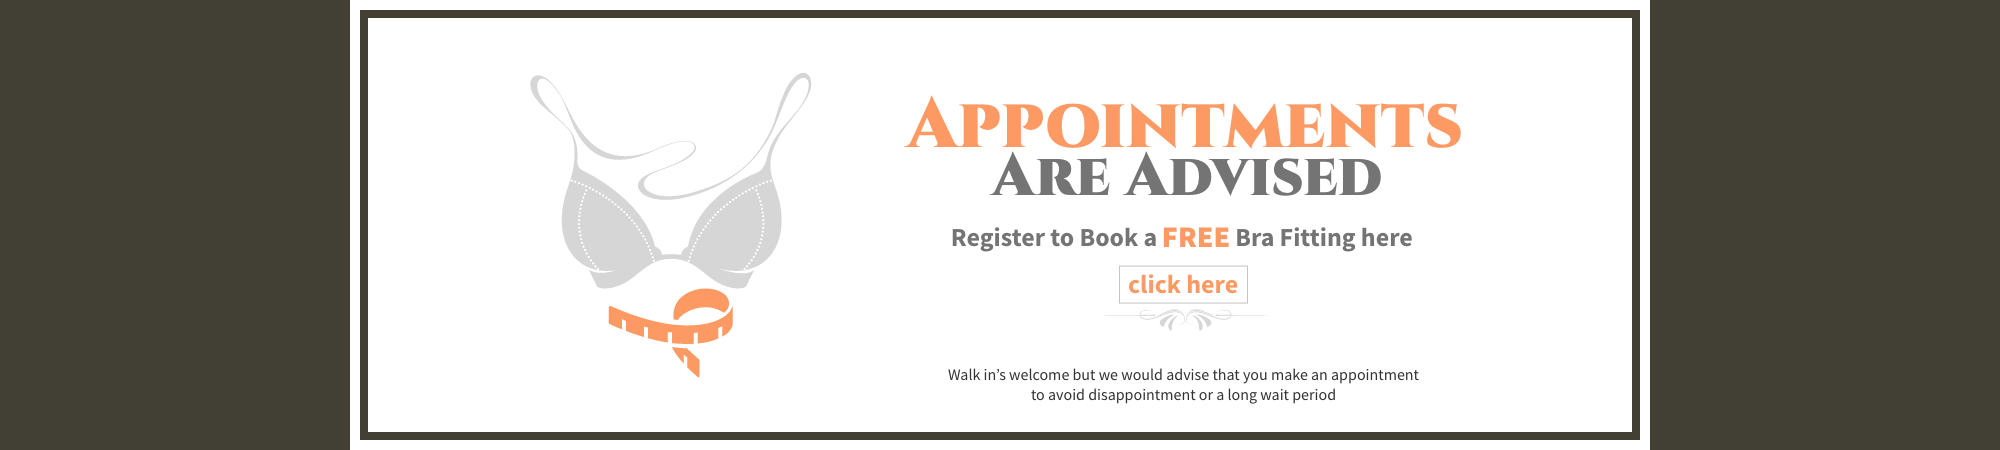 Appointments are Advised - Bra Fitting